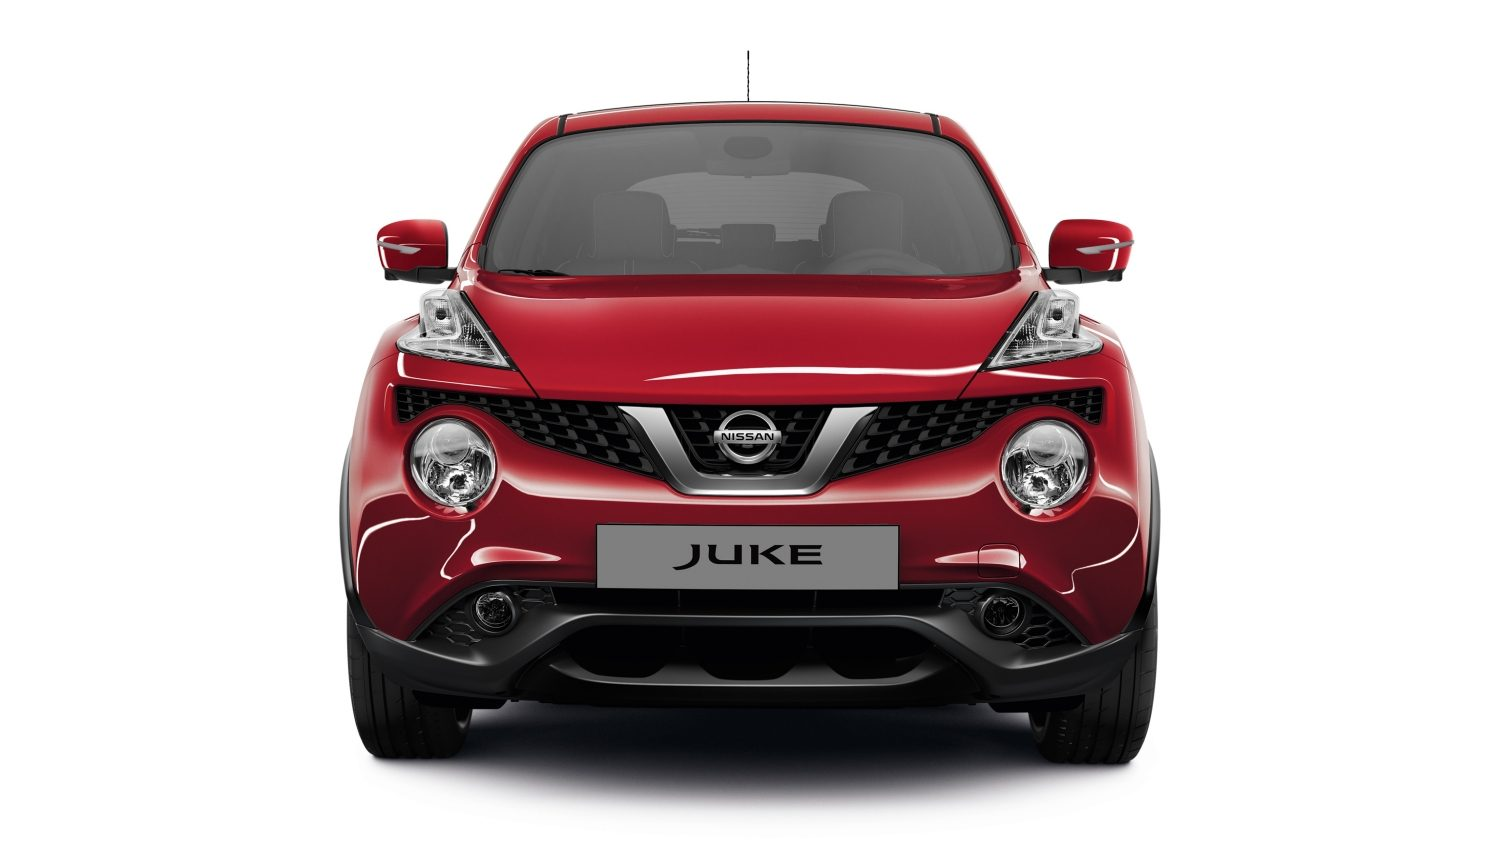 Nissan Juke | V-Shaped Grille